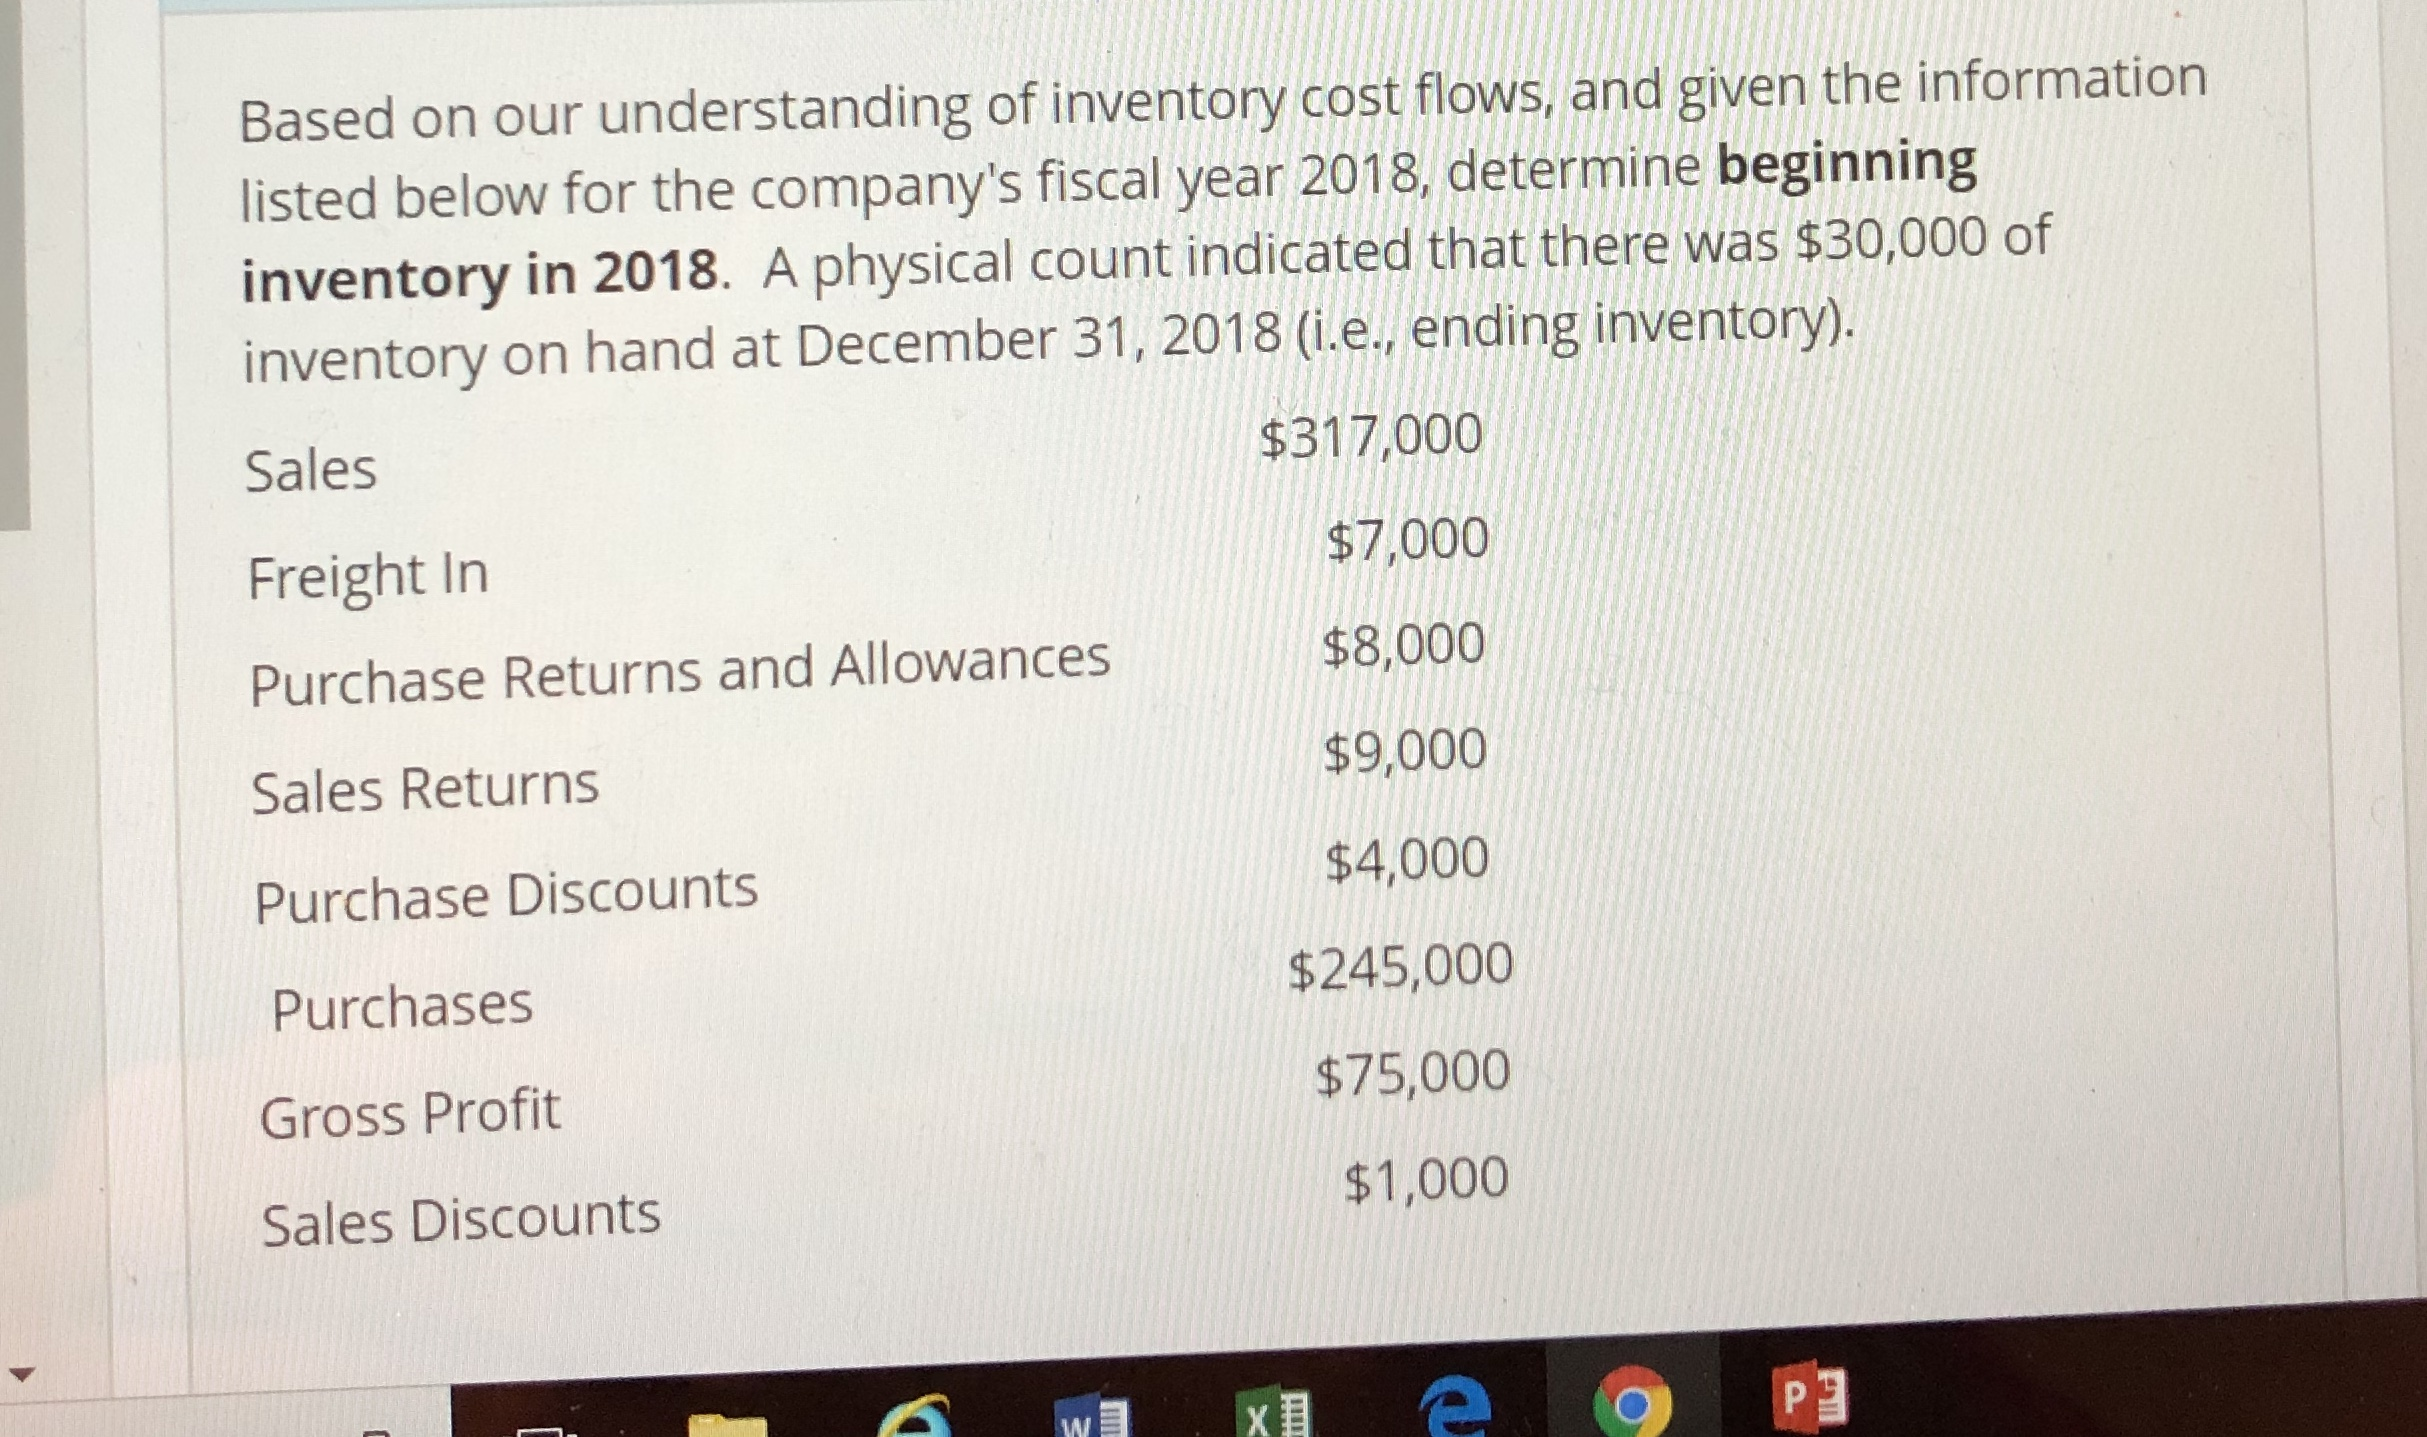 Based on our understanding of inventcory cost fowis,and given the information listed below for the company's fiscal year 2018 determine beginning inventory in 2018. A physical count indicated that there was $30,000 of inventory on hand at December 31, 2018 (i.e.. ending inventory). Sales Freight In Purchase Returns and Allowances Sales Returns Purchase Discounts Purchases Gross Profit Sales Discounts $317,000 $7,000 $8,000 $9,000 $4,000 $245,000 $75,000 $1,000